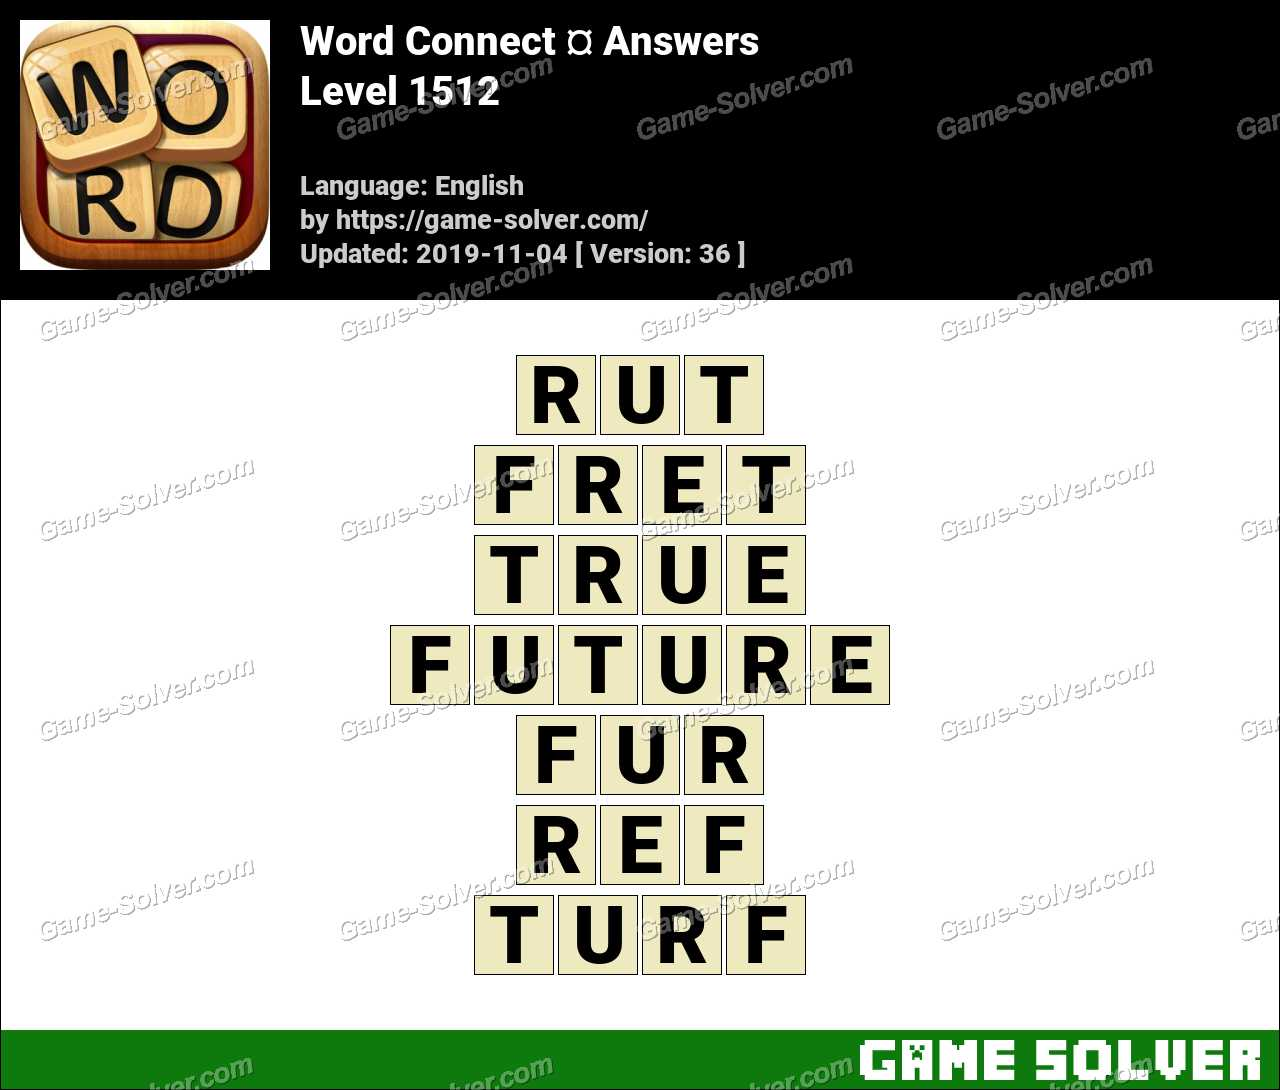 Word Connect Level 1512 Answers